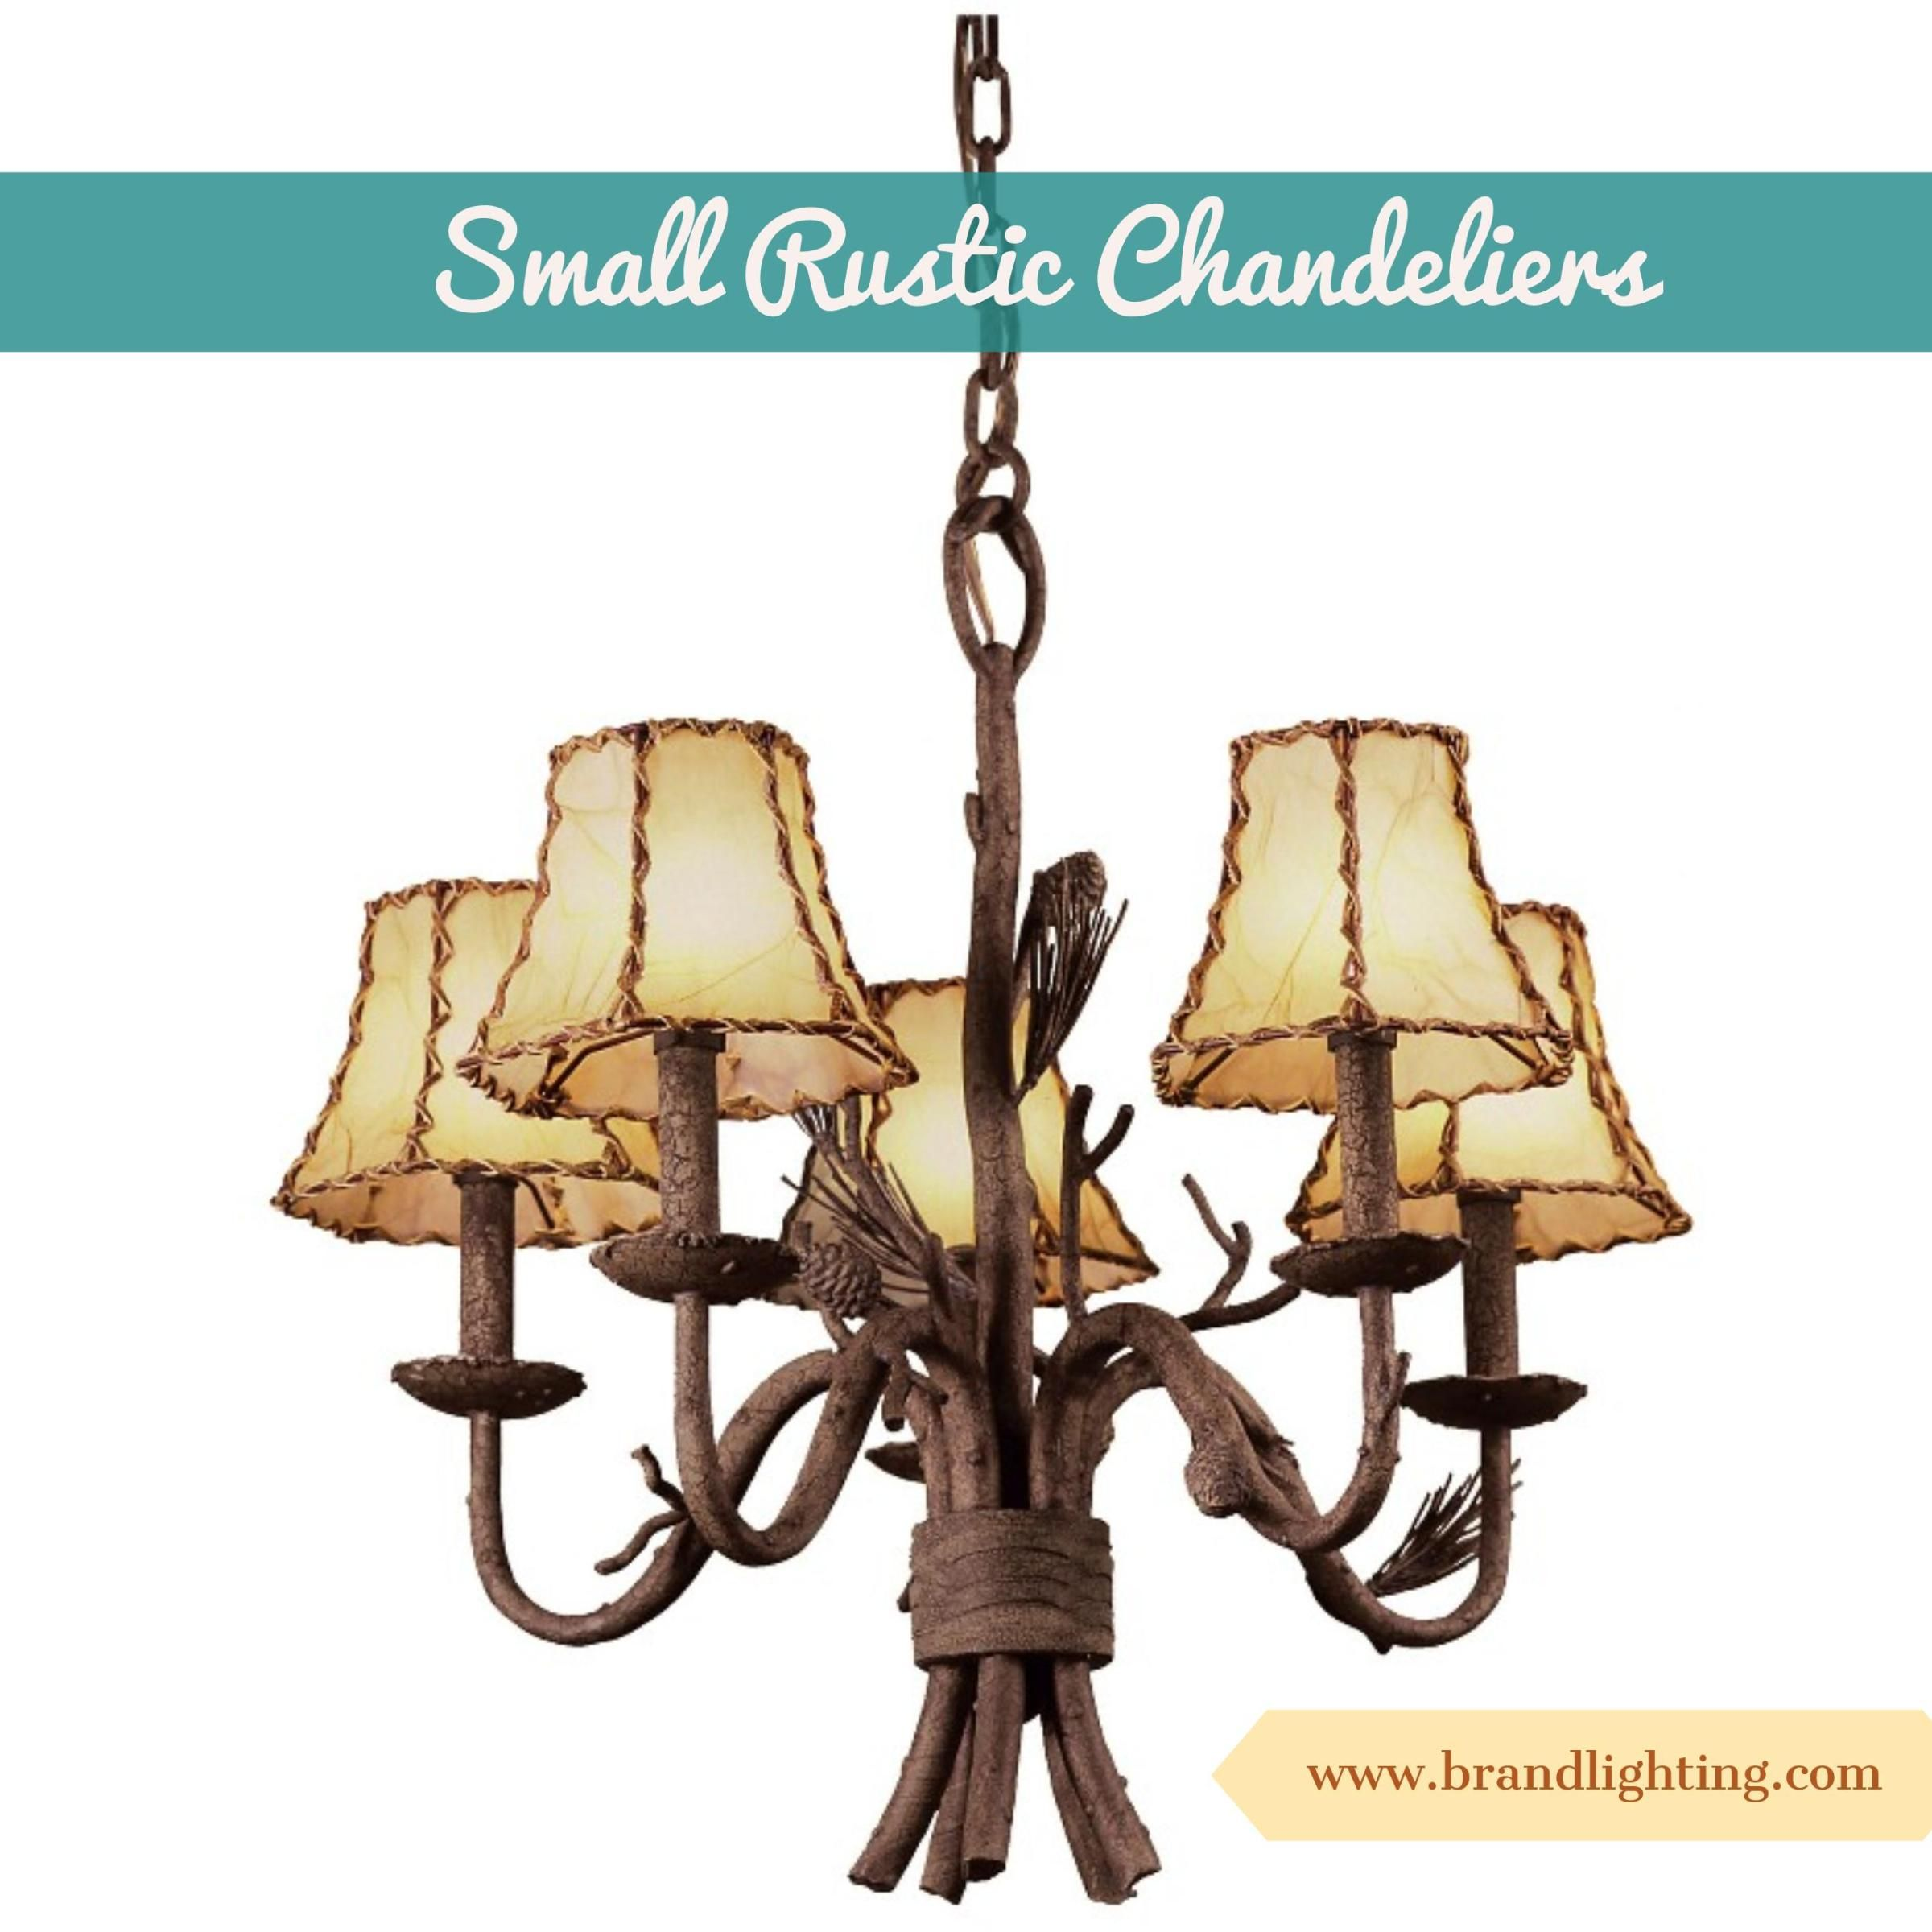 Small rustic chandeliers from brandlighting log cabin small rustic chandeliers from brandlighting mountain cabin decormountain cabinslog mozeypictures Choice Image